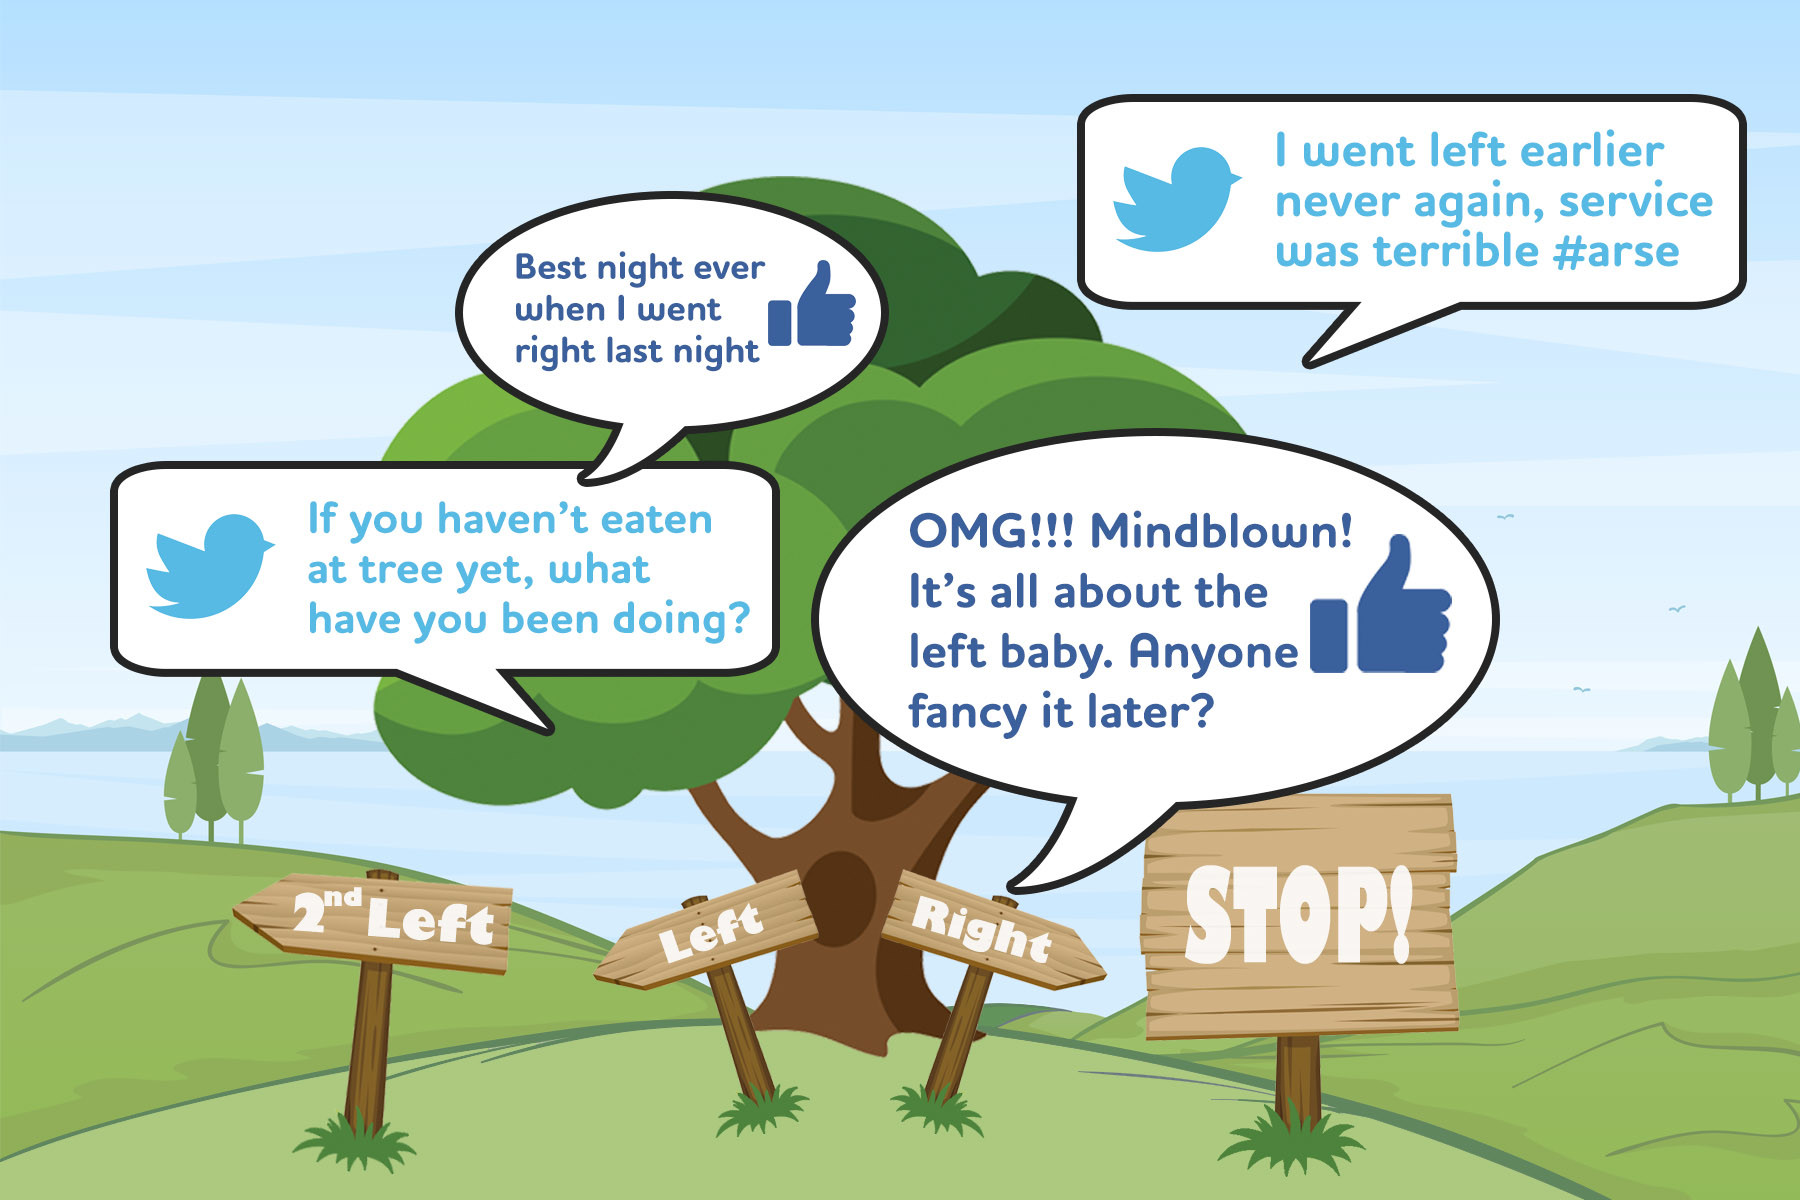 A tree with multiple sign posts and social media captions offering advice and opinions